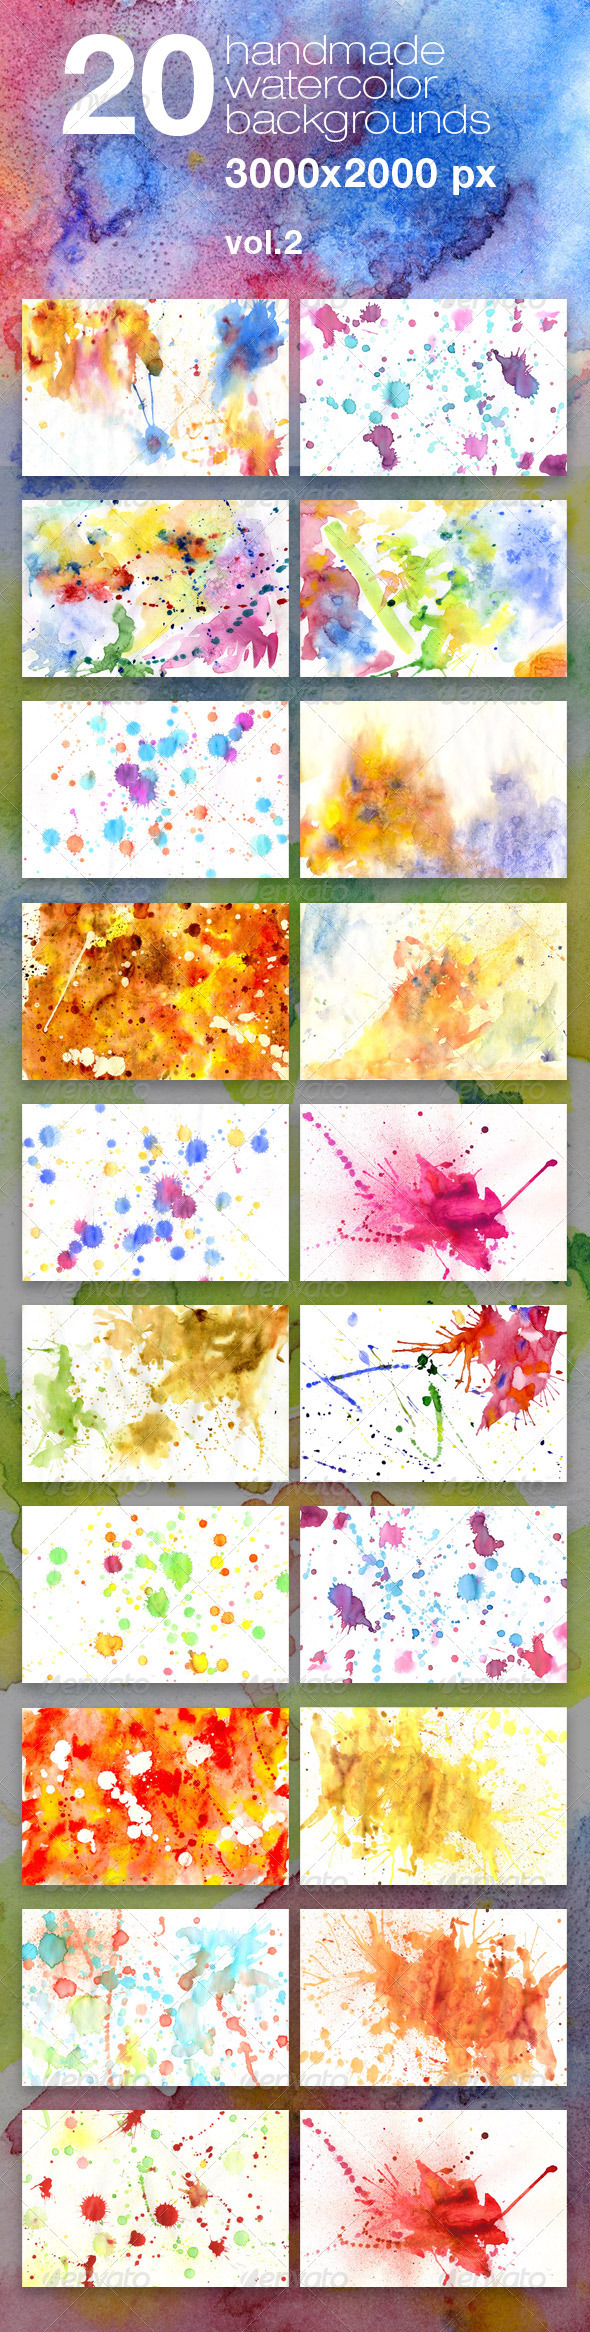 20 Handmade Watercolor Texture Backgrounds - Miscellaneous Textures